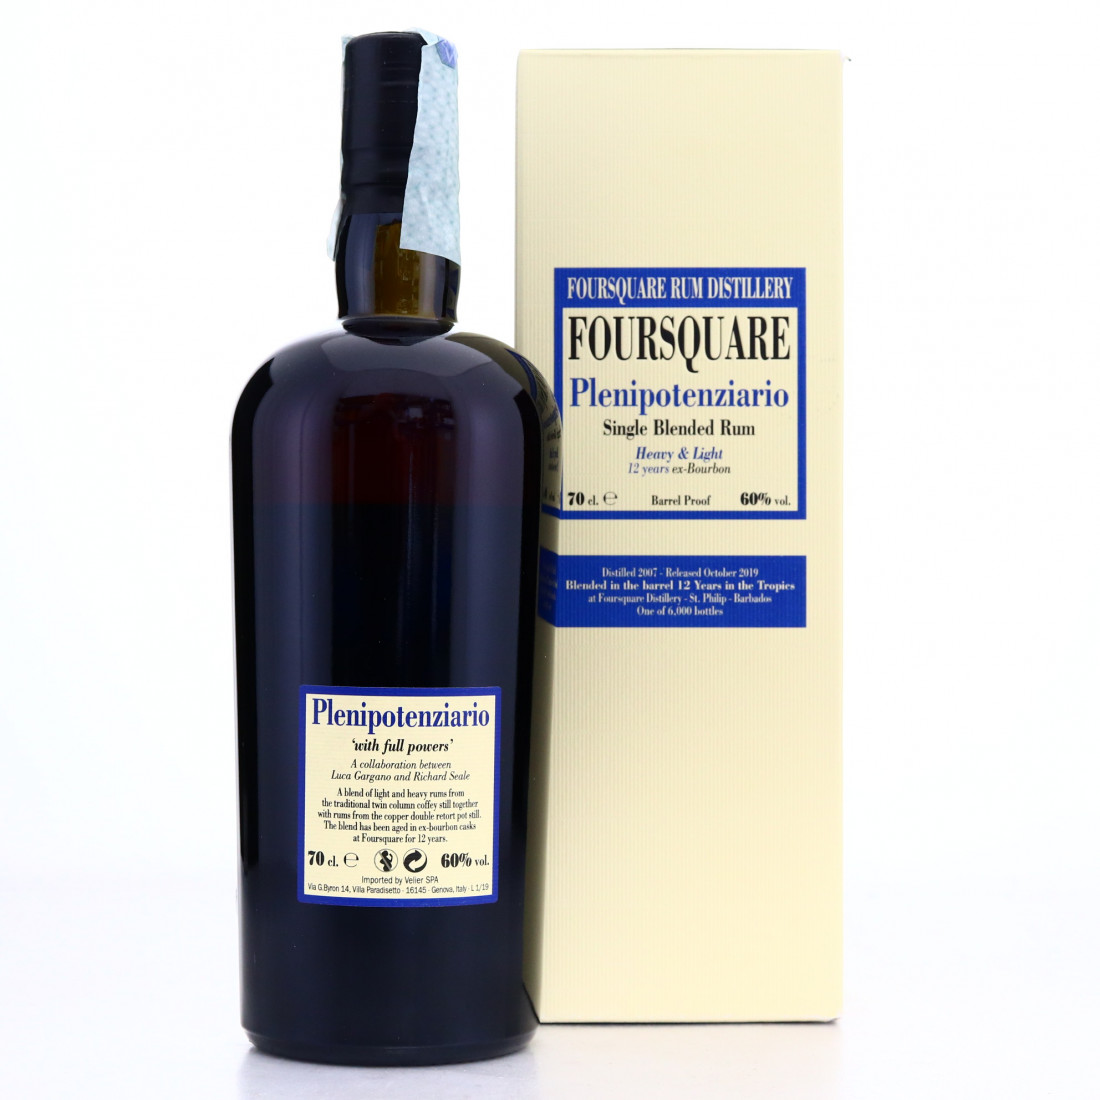 Foursquare 2007 Velier 12 Year Old Plenipotenziario